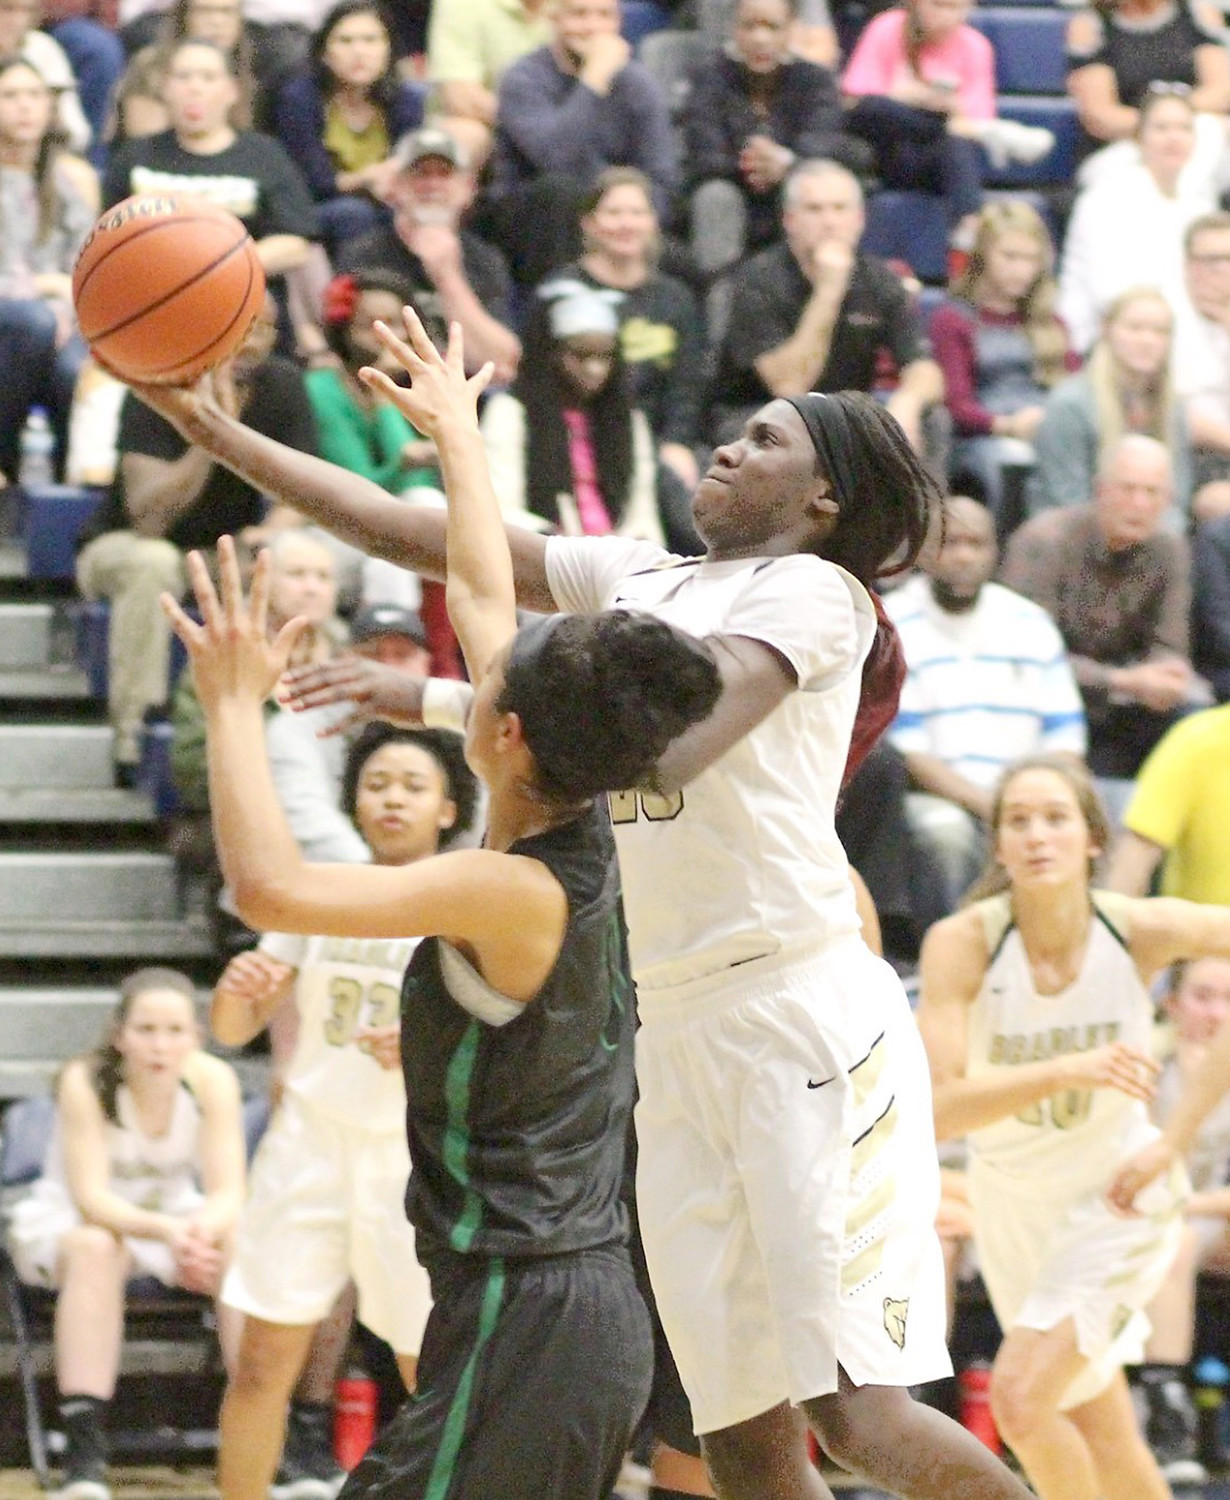 BRADLEY CENTRAL point guard Rhyne Howard has been named Gatorade Player of the Year.